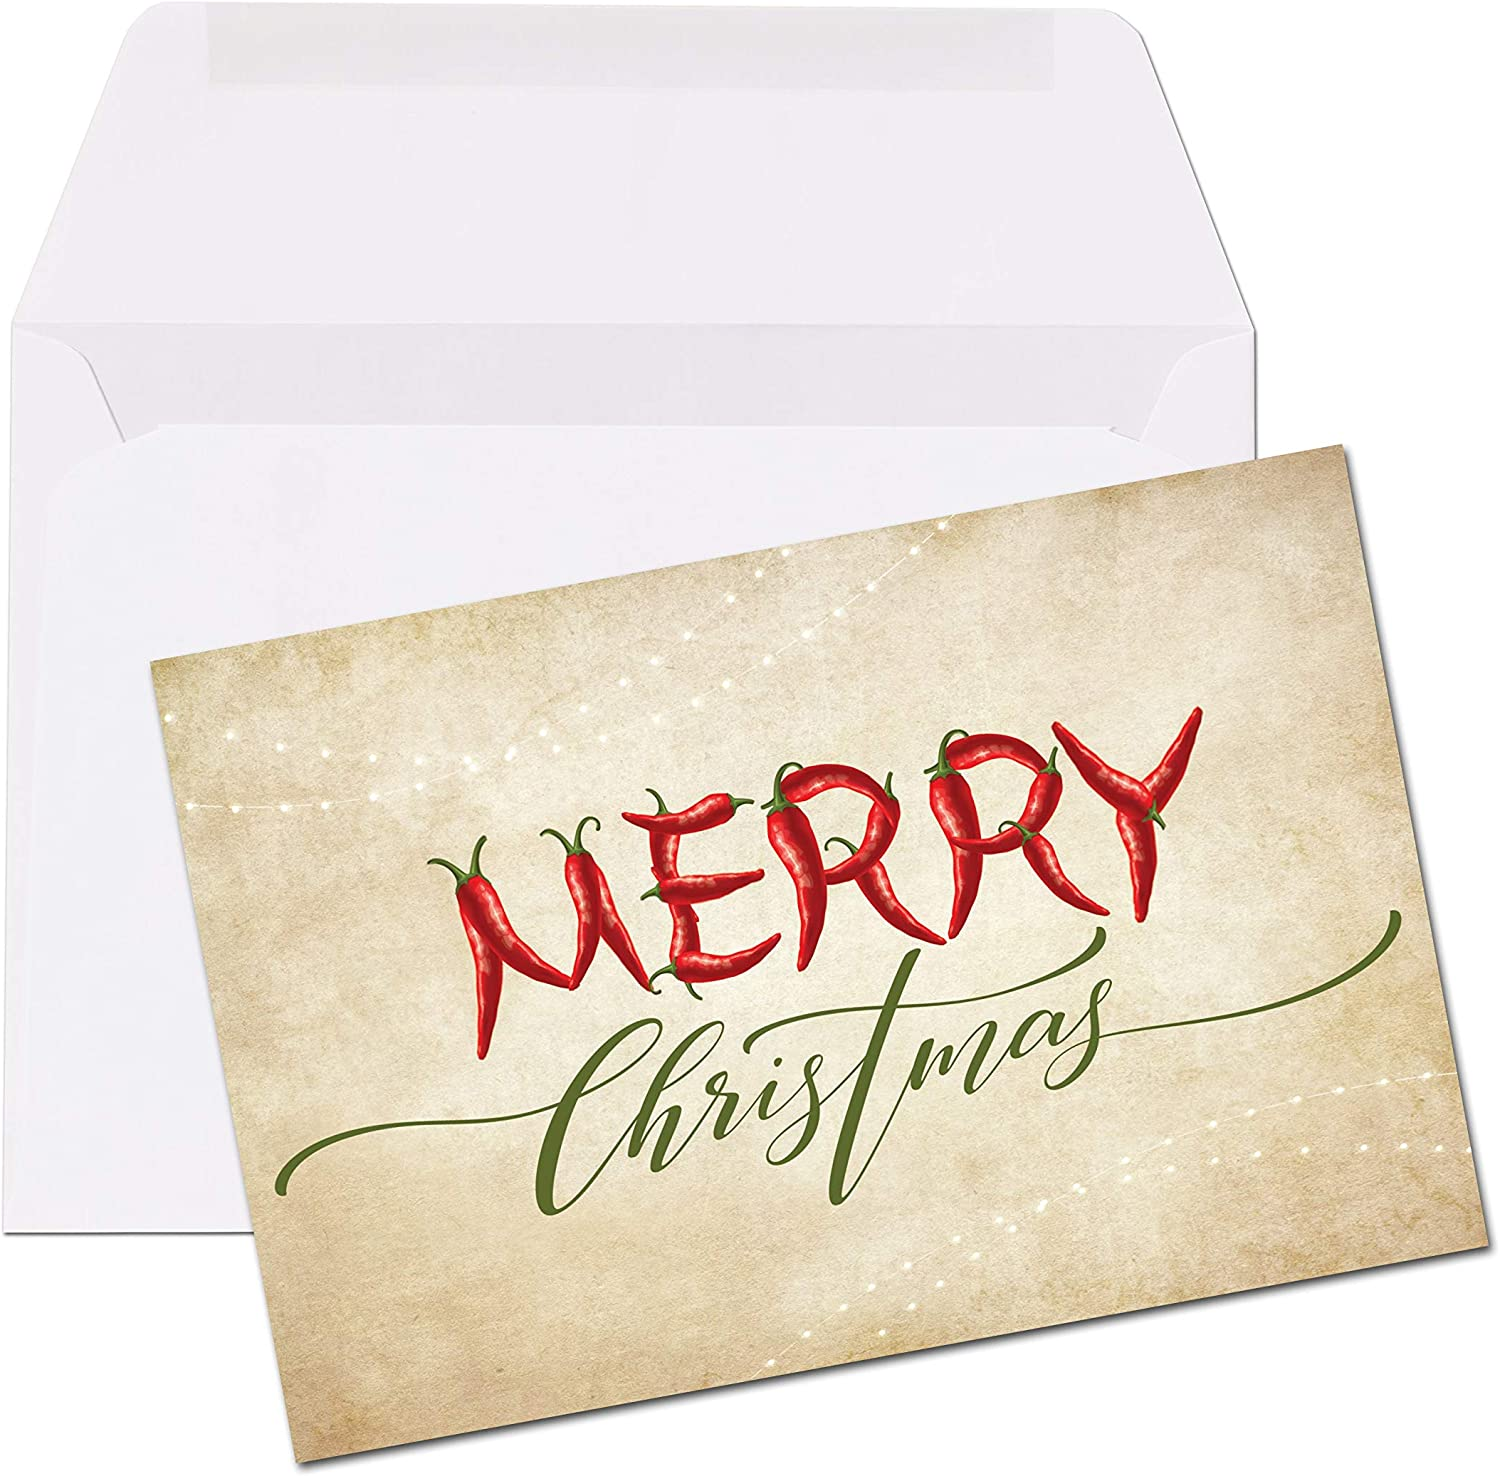 4 x 6 Folded Note Card Merry Christmas